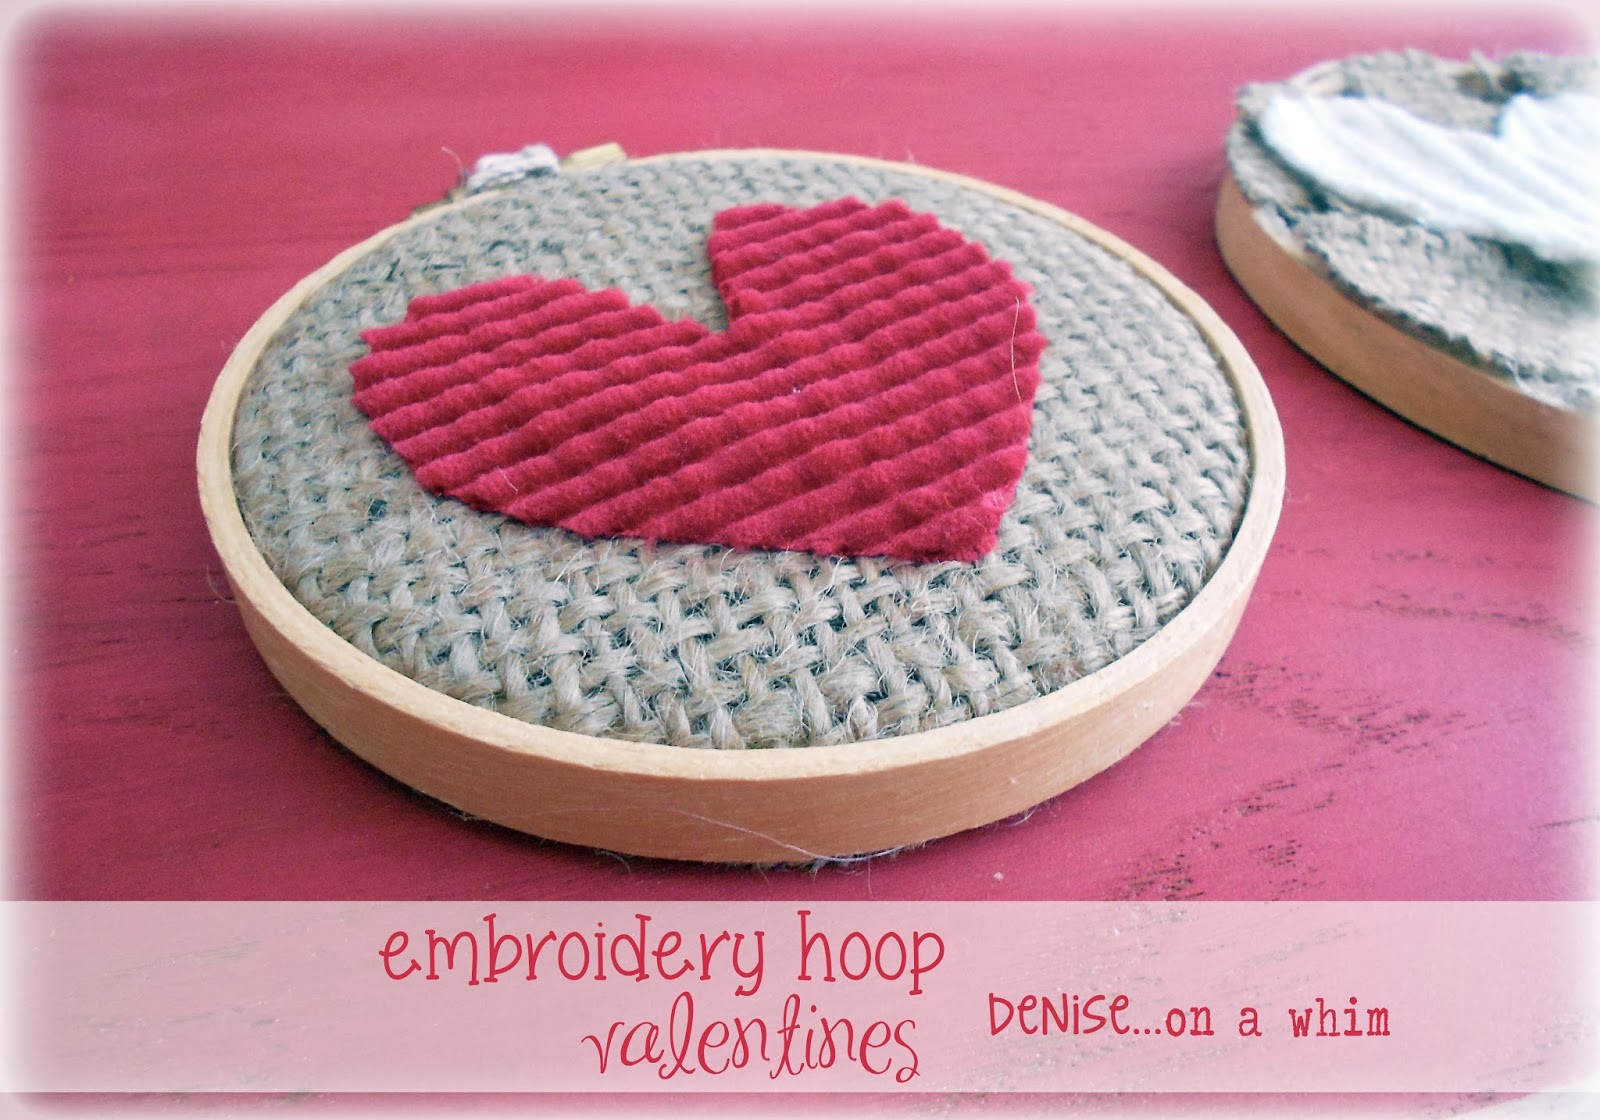 Embroidery Hoop Valentines created by Denise on Whim.com :: Featured on Project Inspire{d} at AnExtraordinaryDay.net